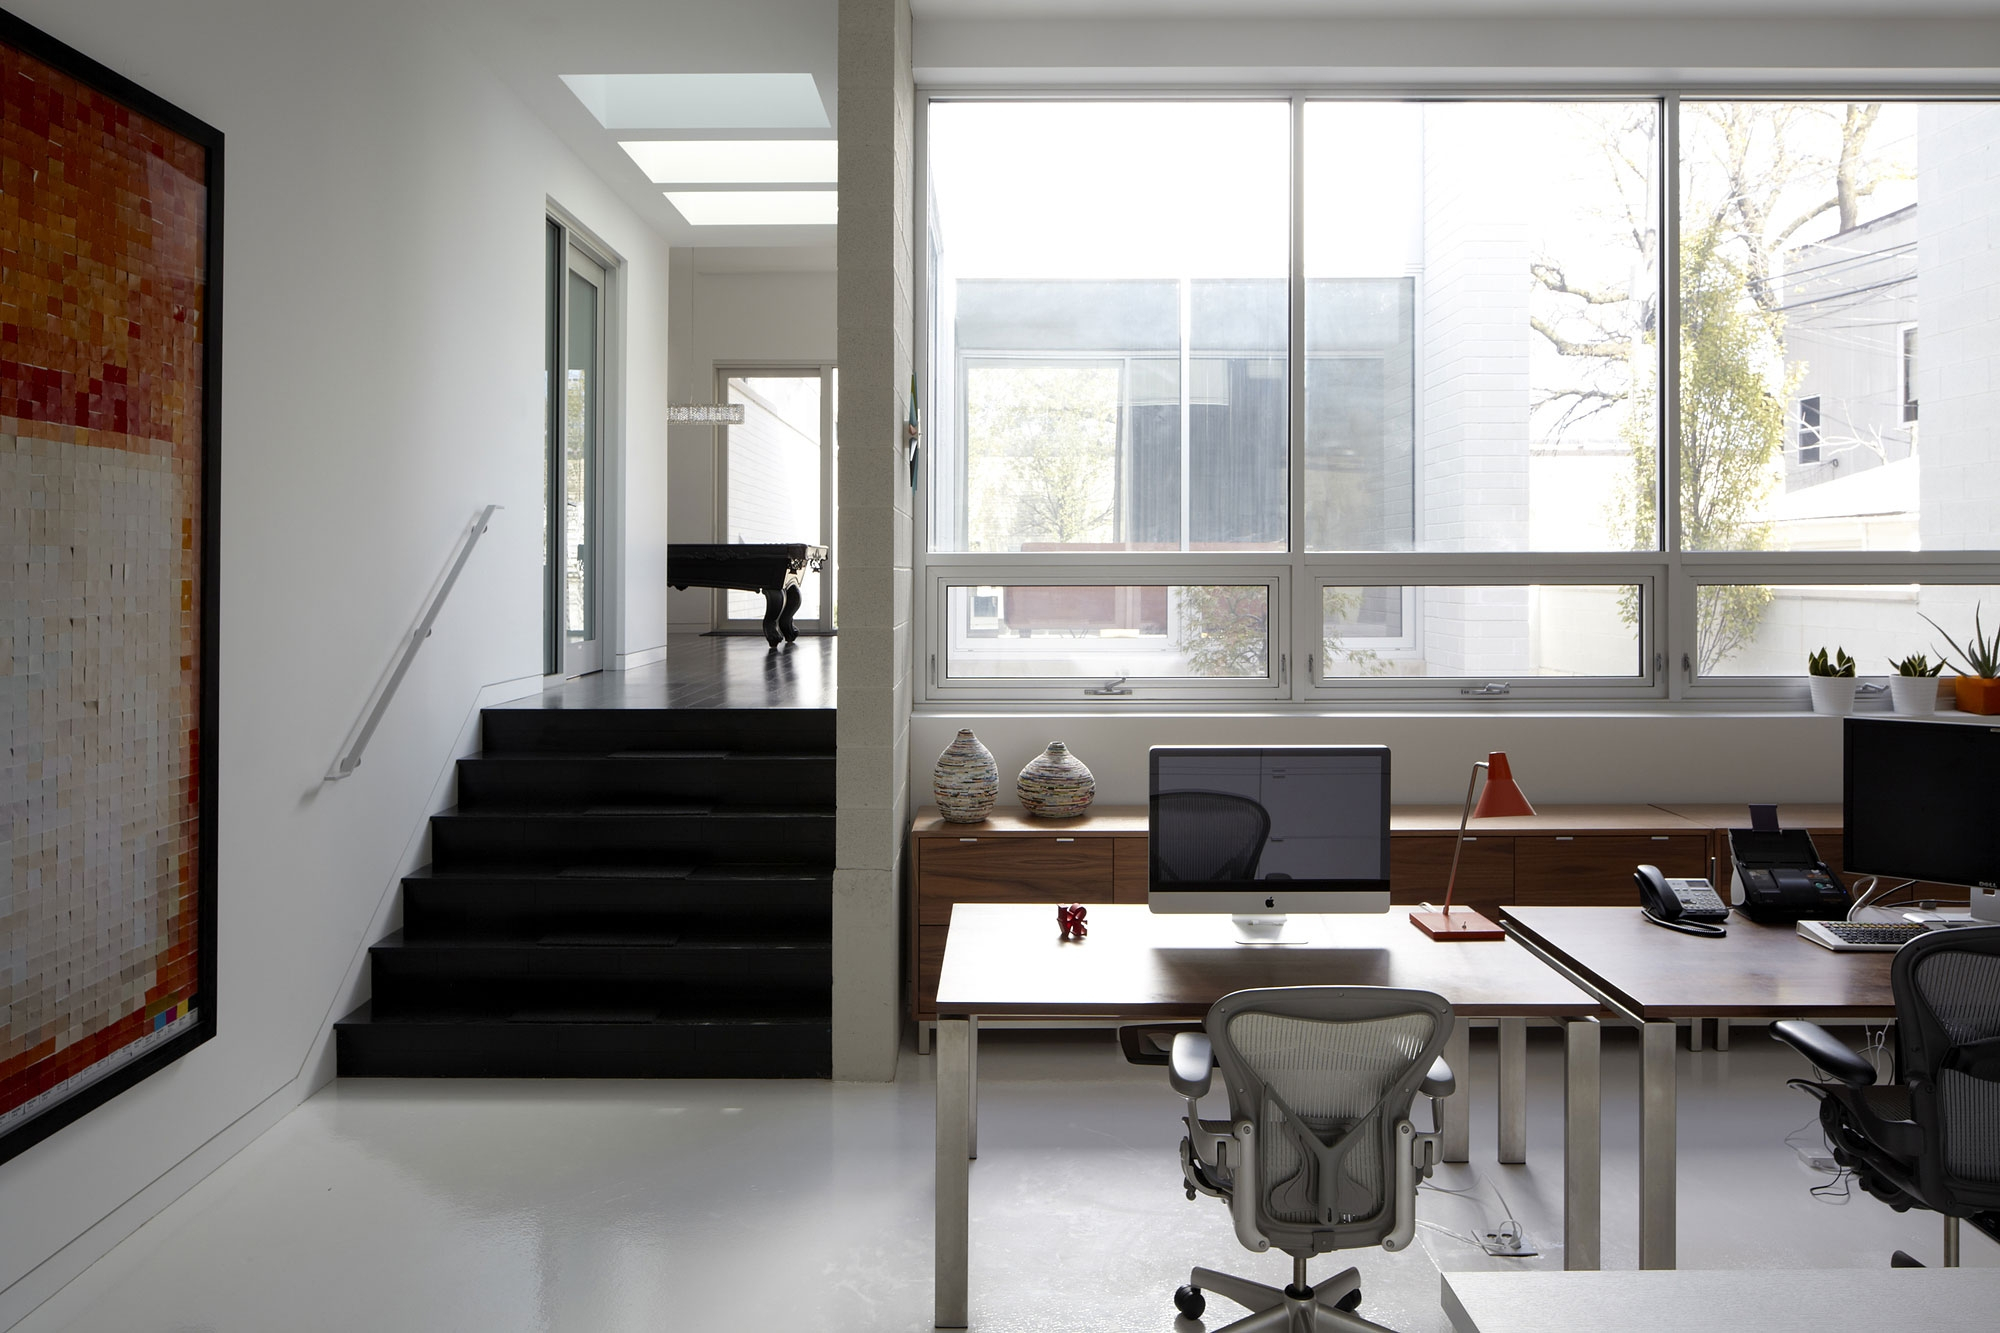 Small Home Office nd Sitting oom Ideas Perfect Home Design - ^